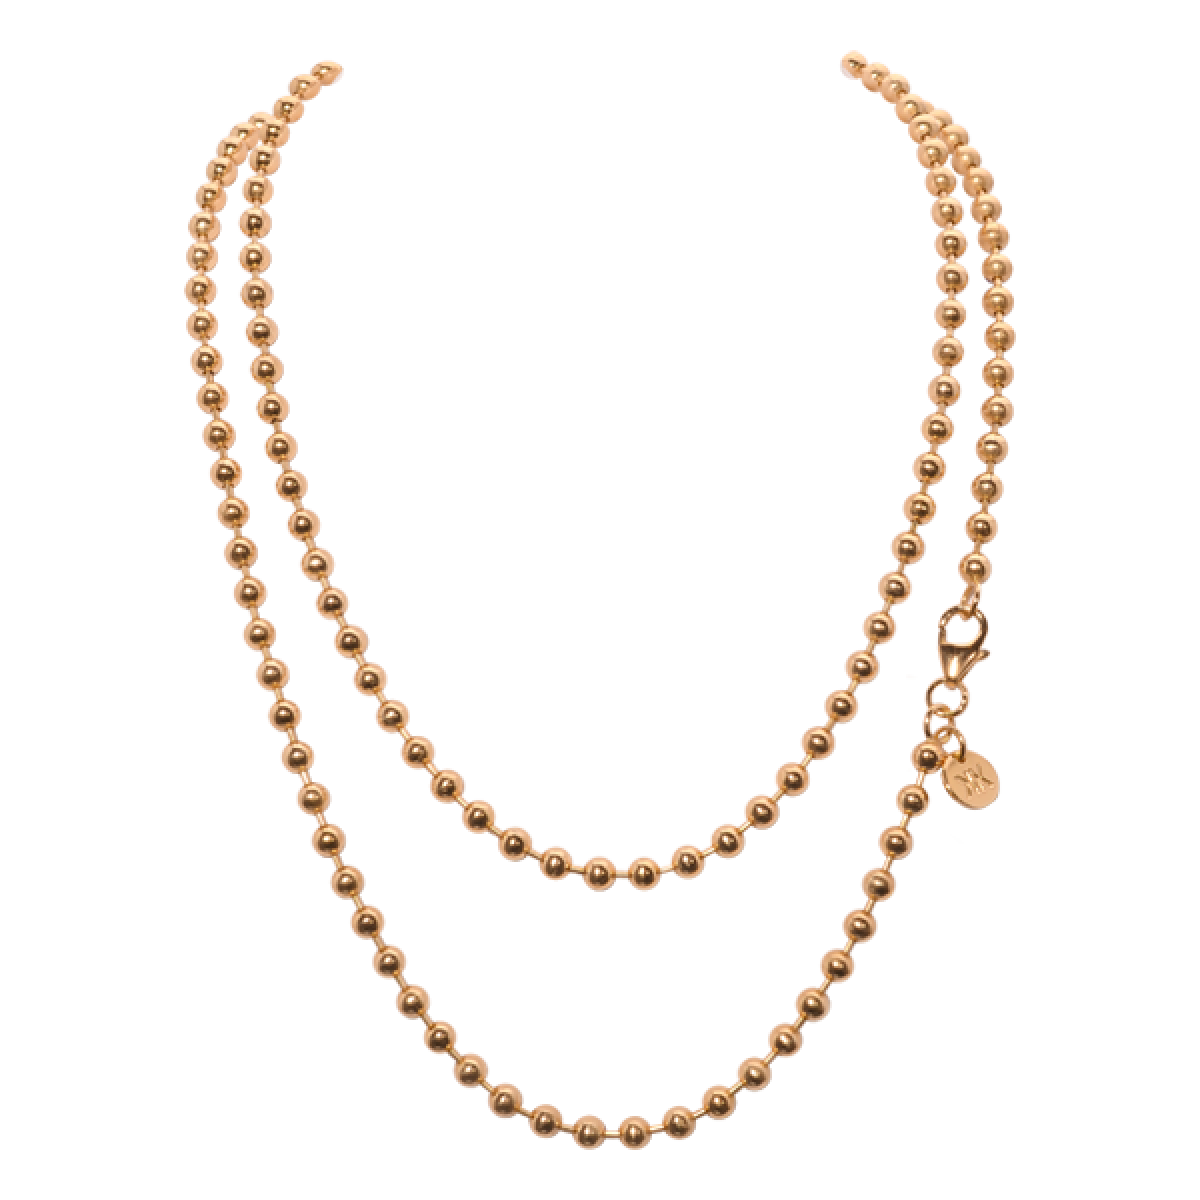 Nikki Lissoni Gold Ball Chain 42cm Gold Chains Jewellery Online Jewelry Store Chains Jewelry Jewelry